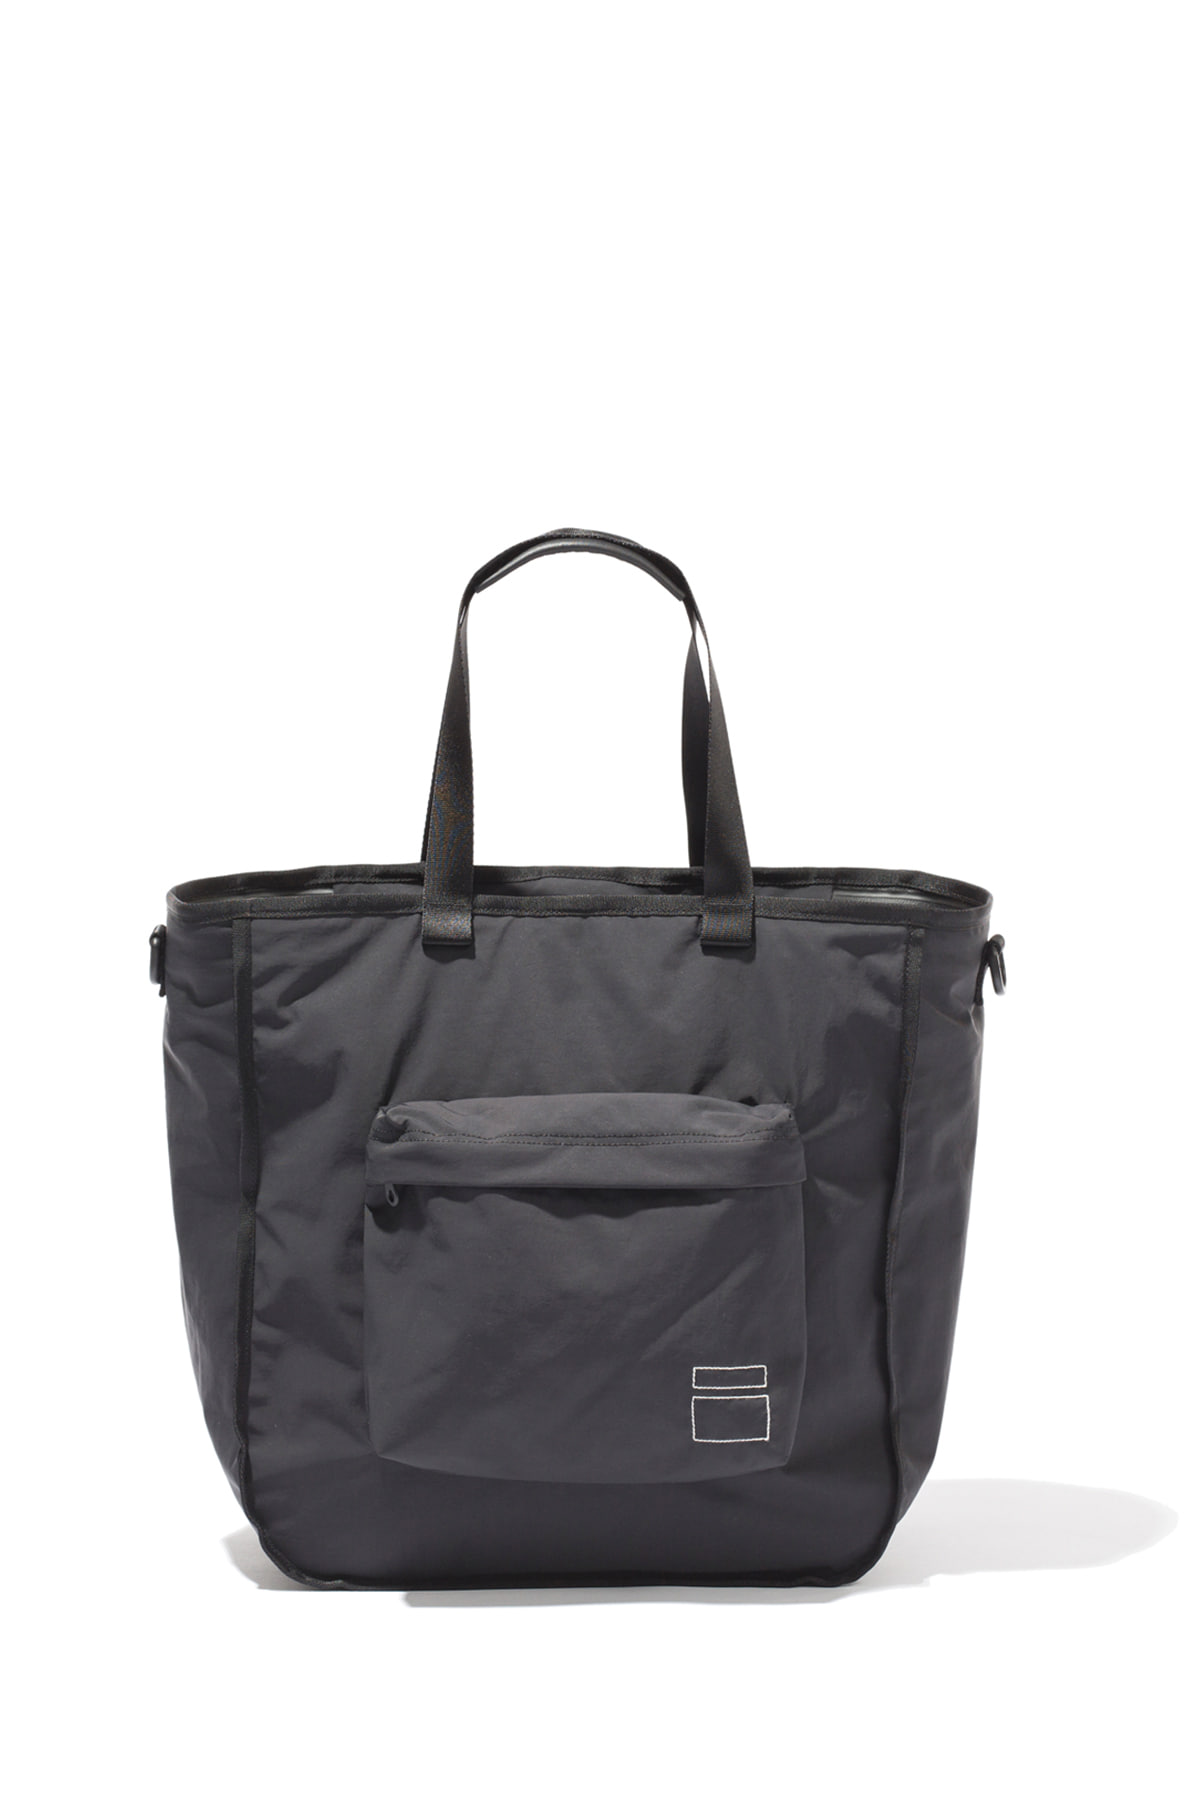 Blankof : TLG 01 990 T990 Bag (Black)